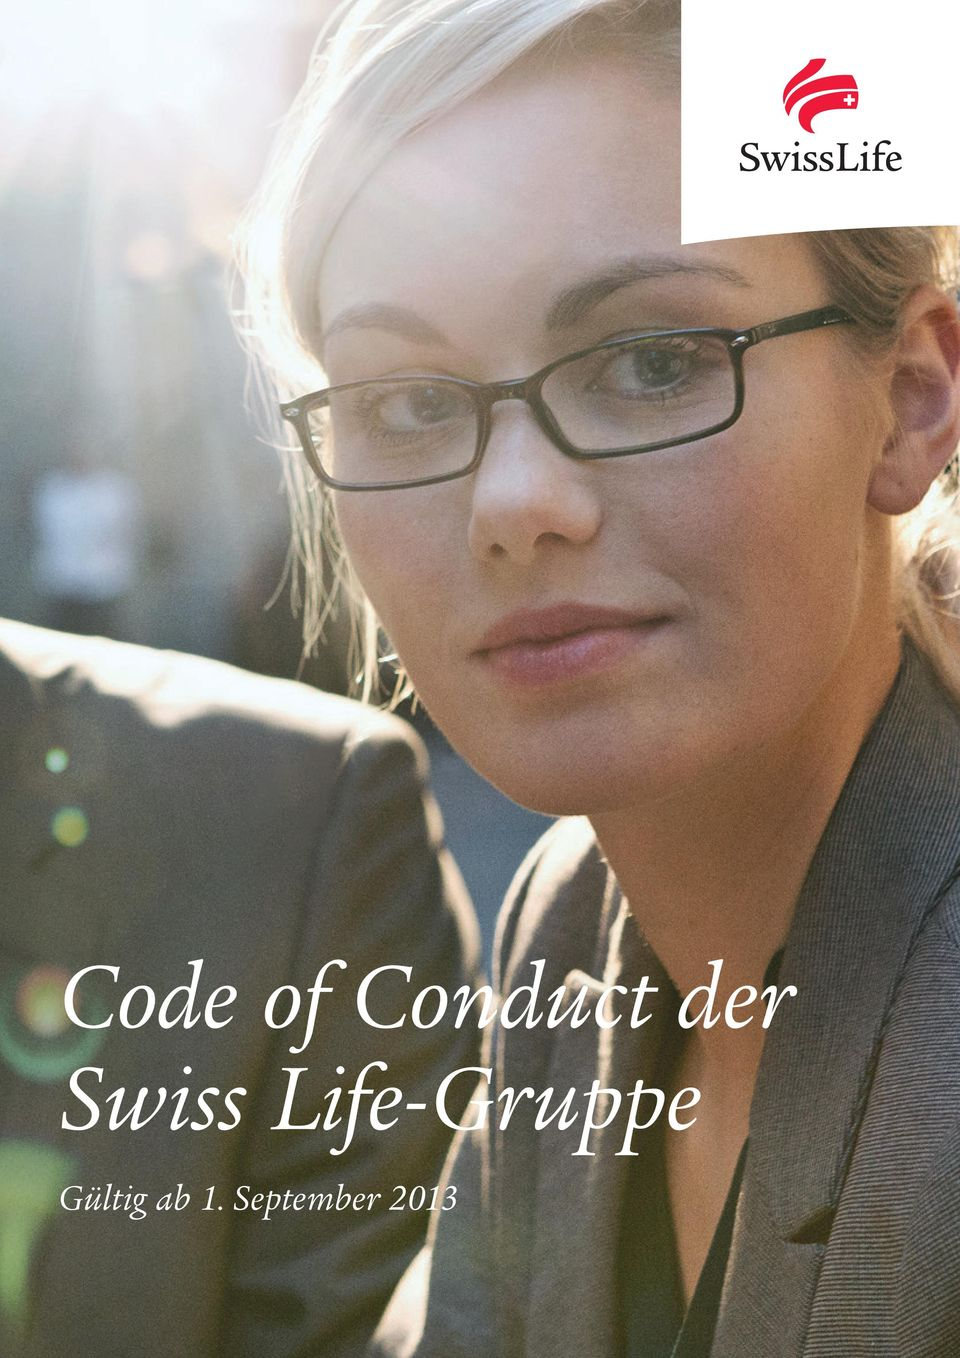 Life-Gruppe